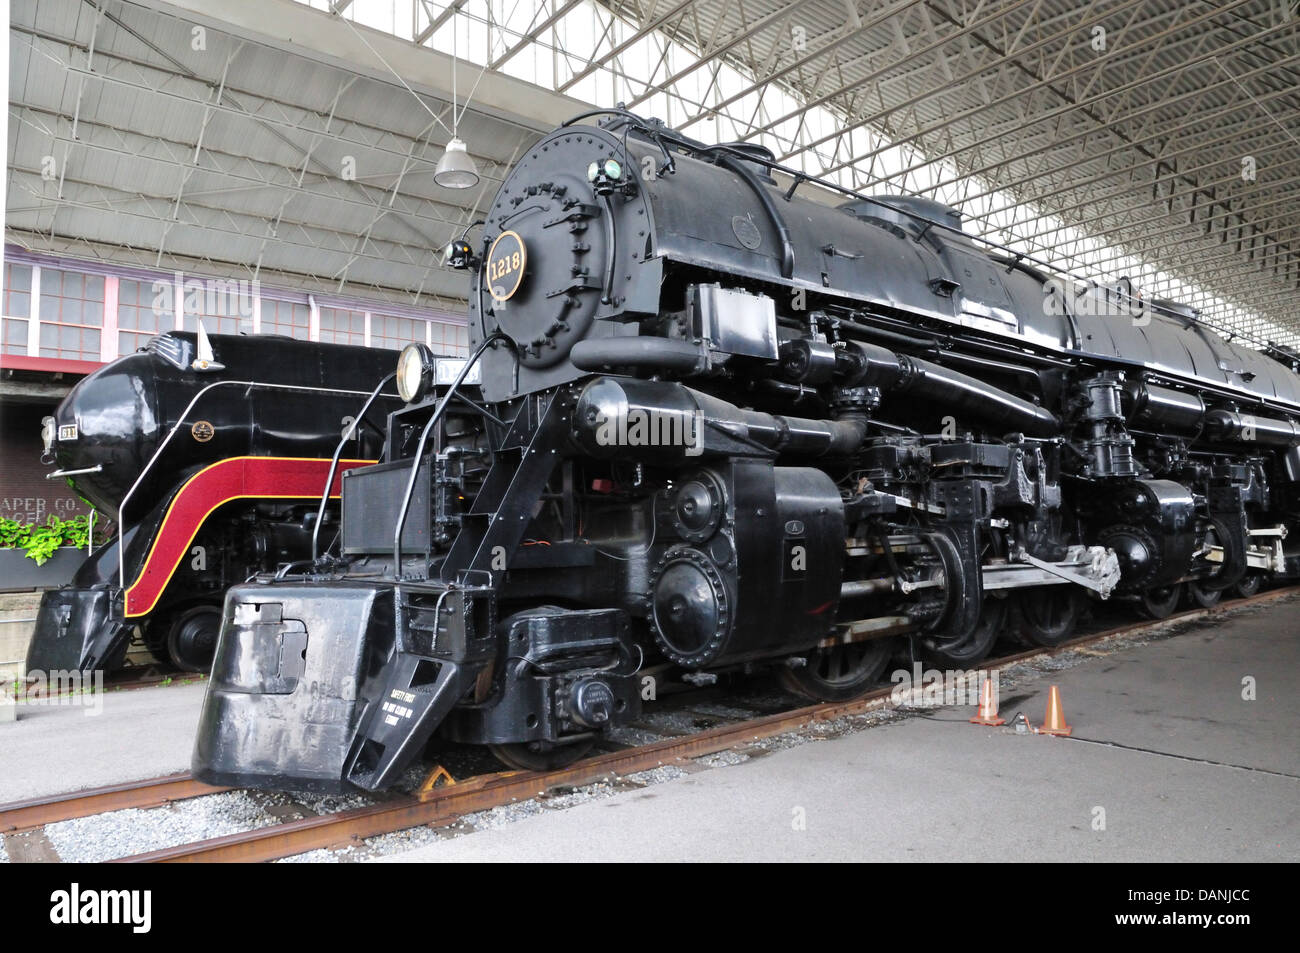 Norfolk and Western Class J 611 and Class A 1218 steam locomotives at the  Virginia Museum of Transportation, Roanoke